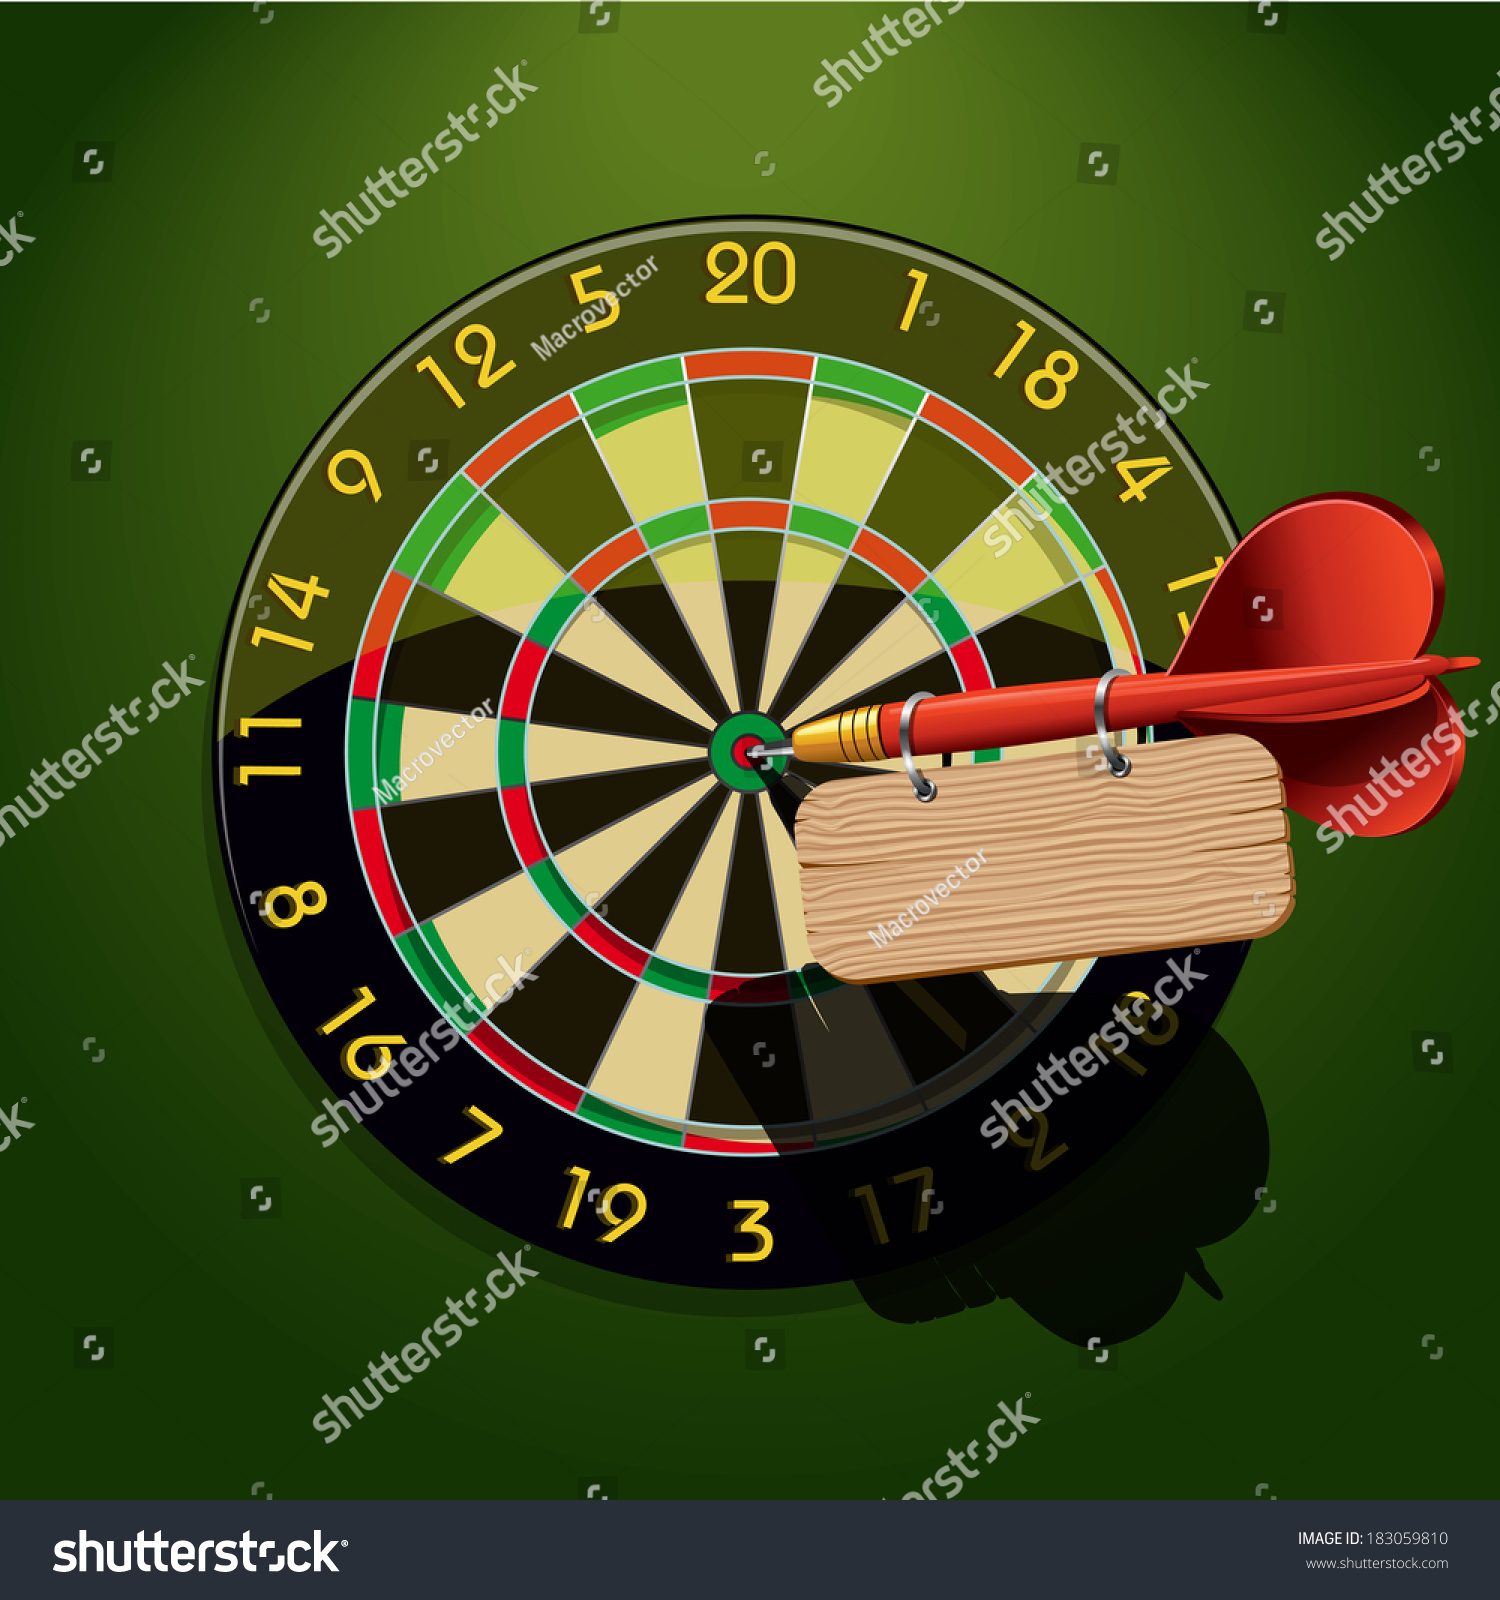 Dartboard Dart Blank Table Template Center Stock Vector 183059810 ...